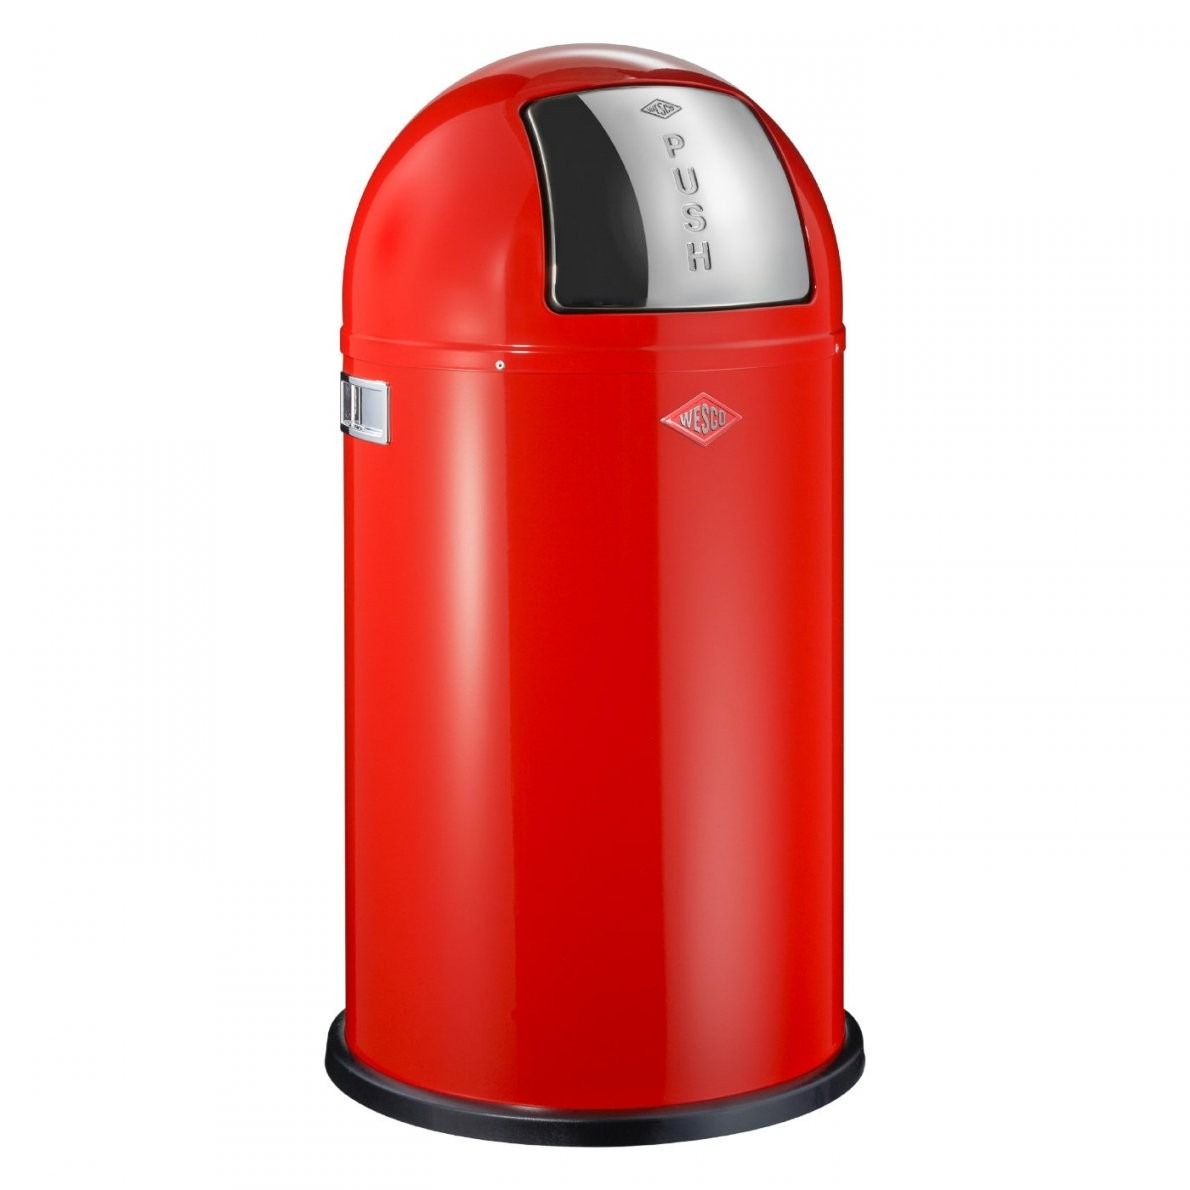 Pushboy 50 Liter Rot Mülleimer  Wesco Onlineshop von Mülleimer Küche Wesco Photo